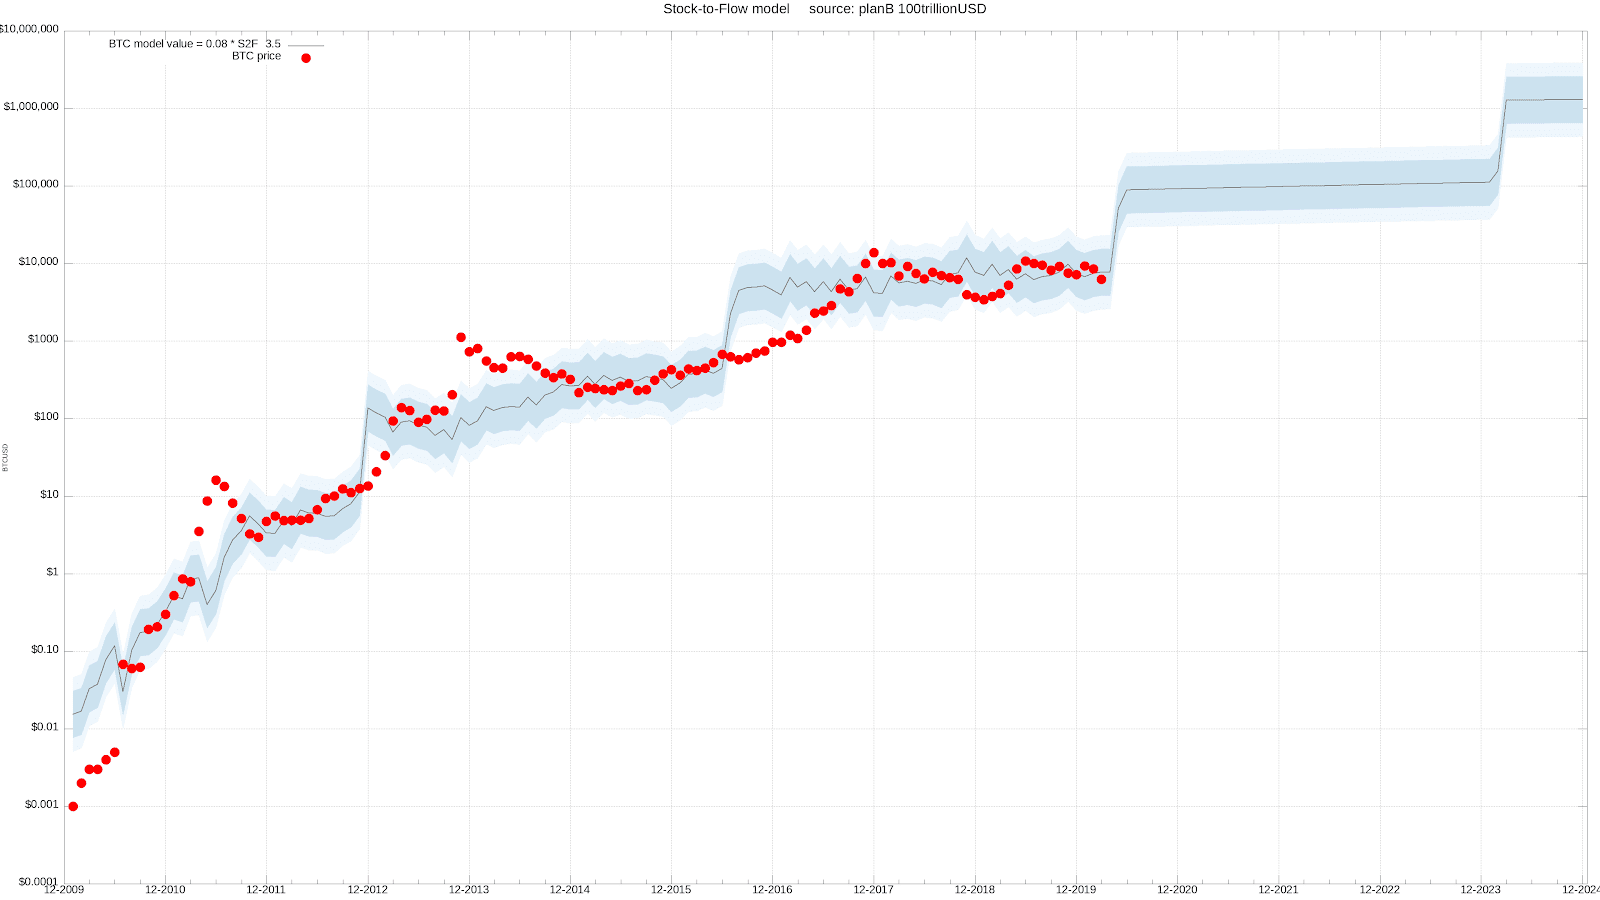 Bitcoin stock-to-flow price model as of March 24